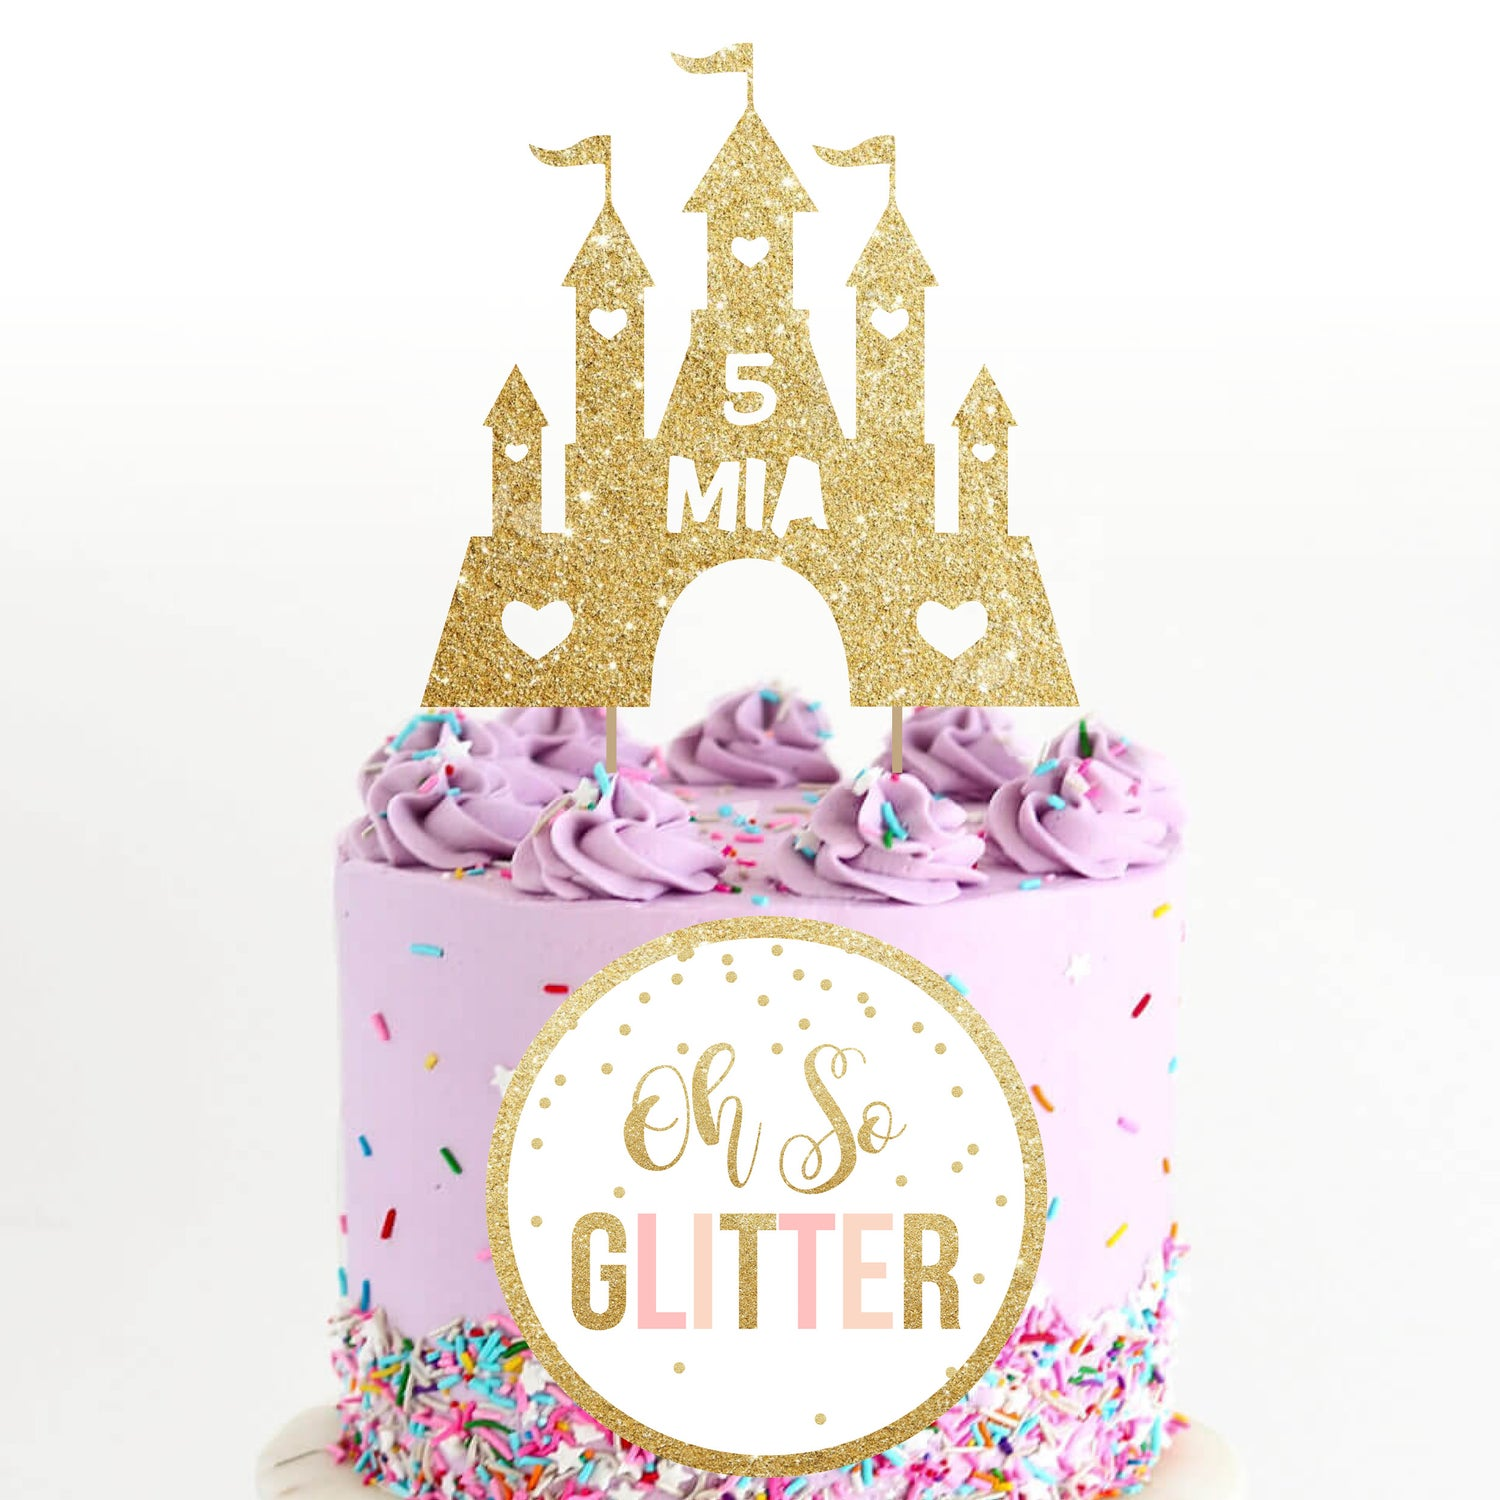 Strange Princess Castle Cake Topper Oh So Glitter Funny Birthday Cards Online Inifofree Goldxyz